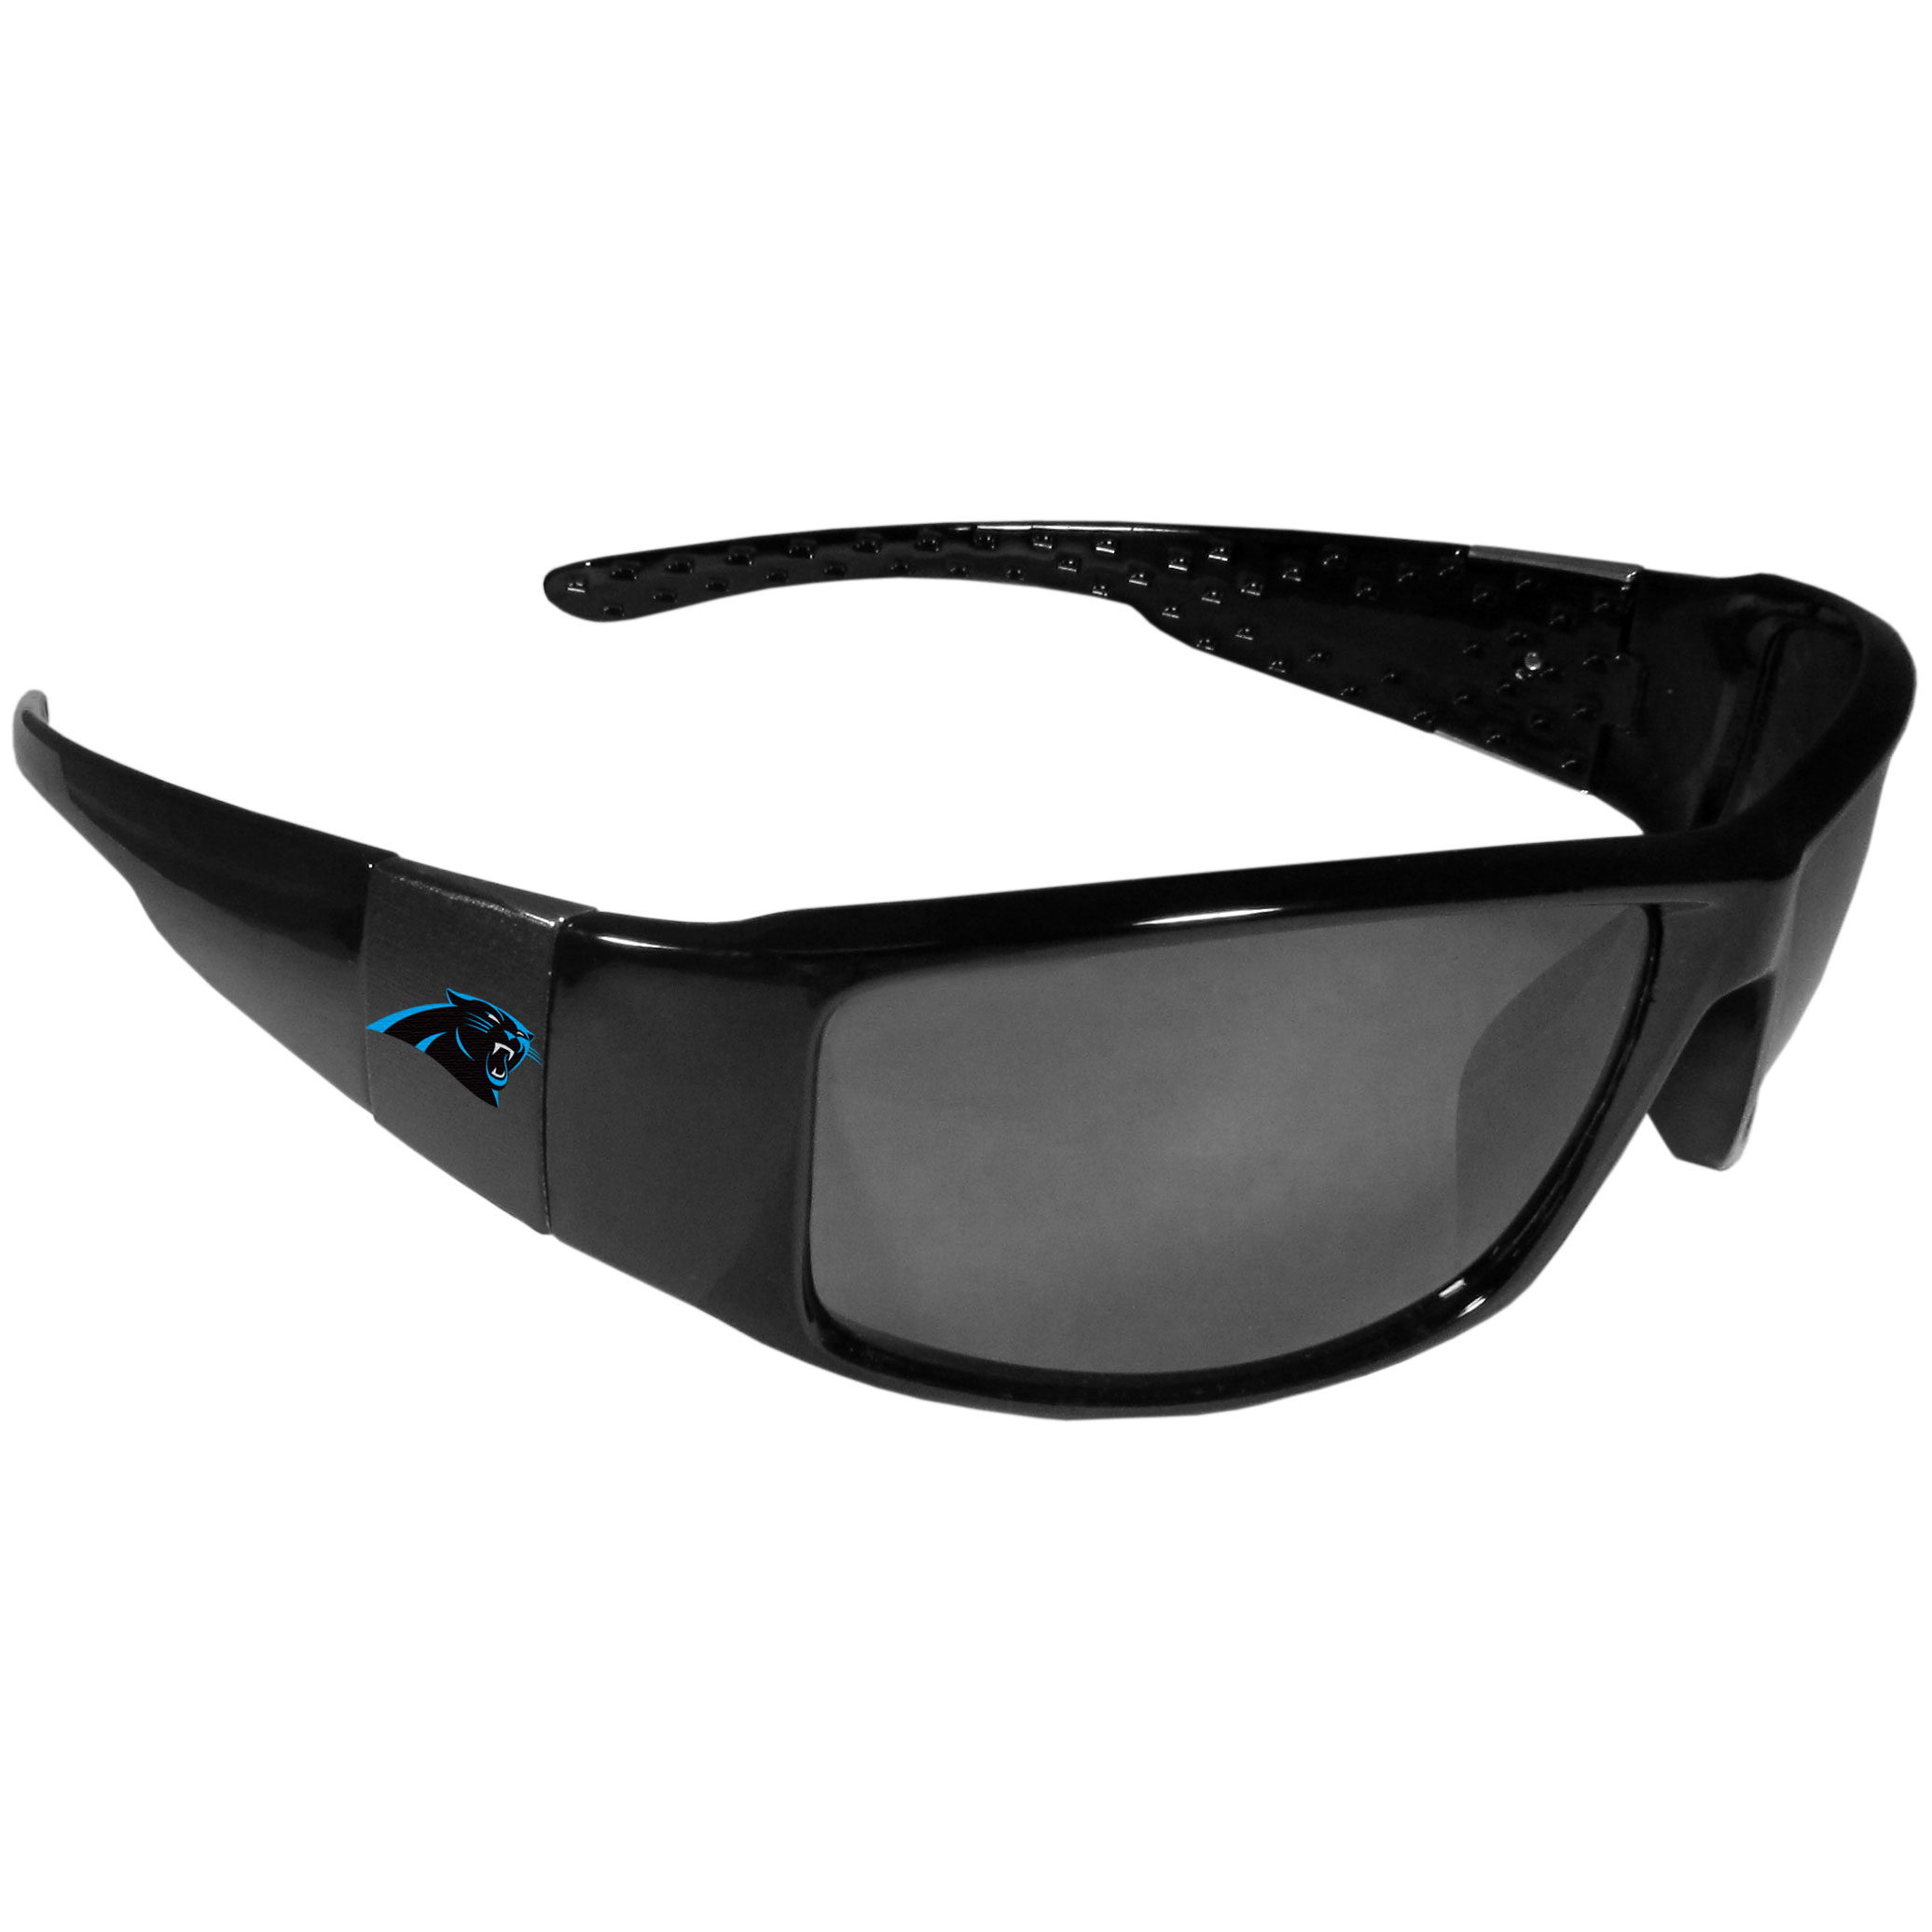 Carolina Panthers Black Wrap Sunglasses - These designer inspired frames have a sleek look in all black with  Carolina Panthers shields on each arm with a printed logo. The shades are perfect for any outdoor activity like; golfing, driving, hiking, fishing or cheering on the team at a tailgating event or at a home game day BBQ with a lens rating of 100% UVA/UVB for maximum UV protection. The high-quality frames are as durable as they are fashionable and with their classic look they are the perfect fan accessory that can be worn everyday for every occasion.